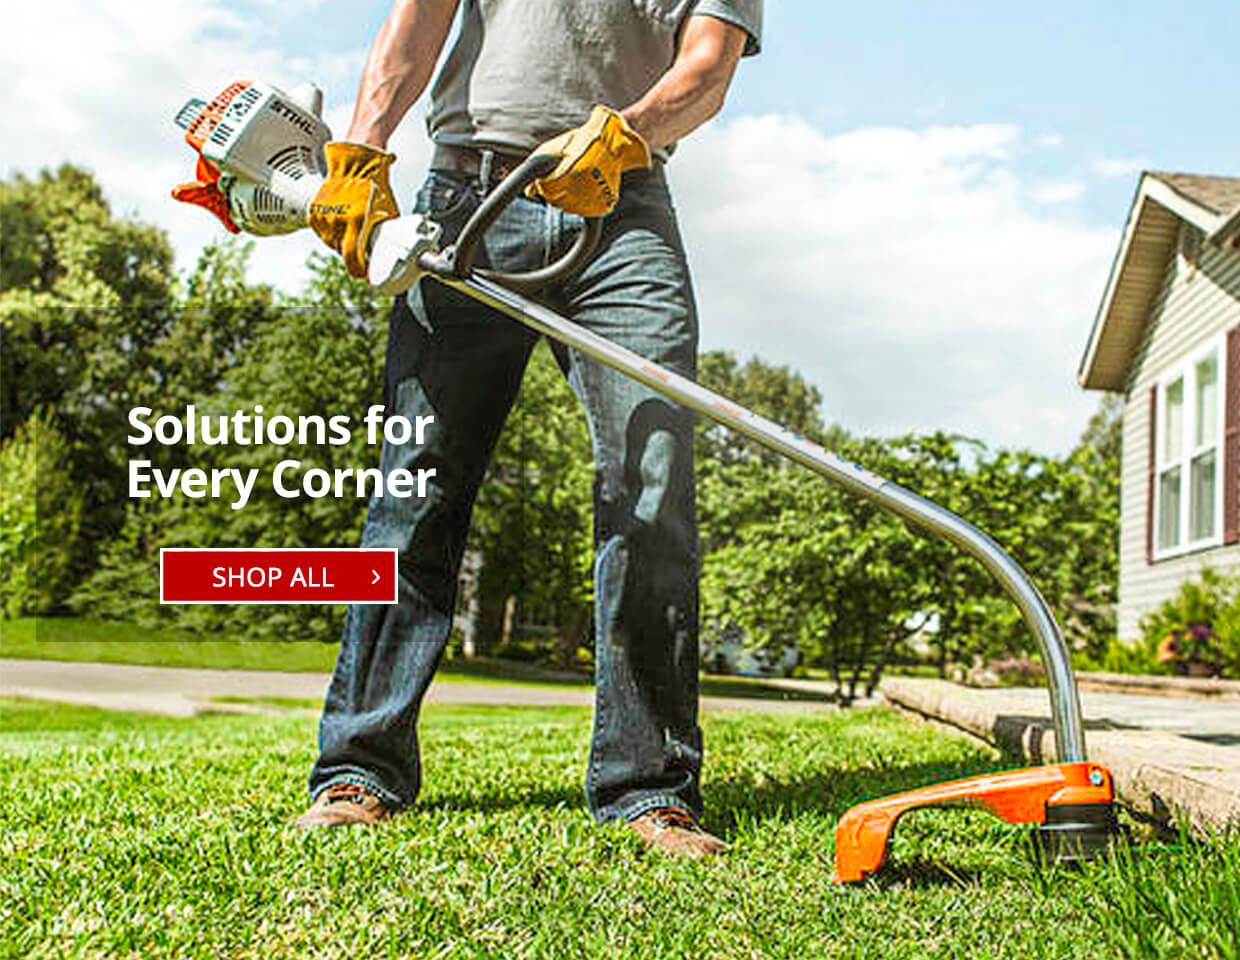 Shop STIHL Outdoor Equipments